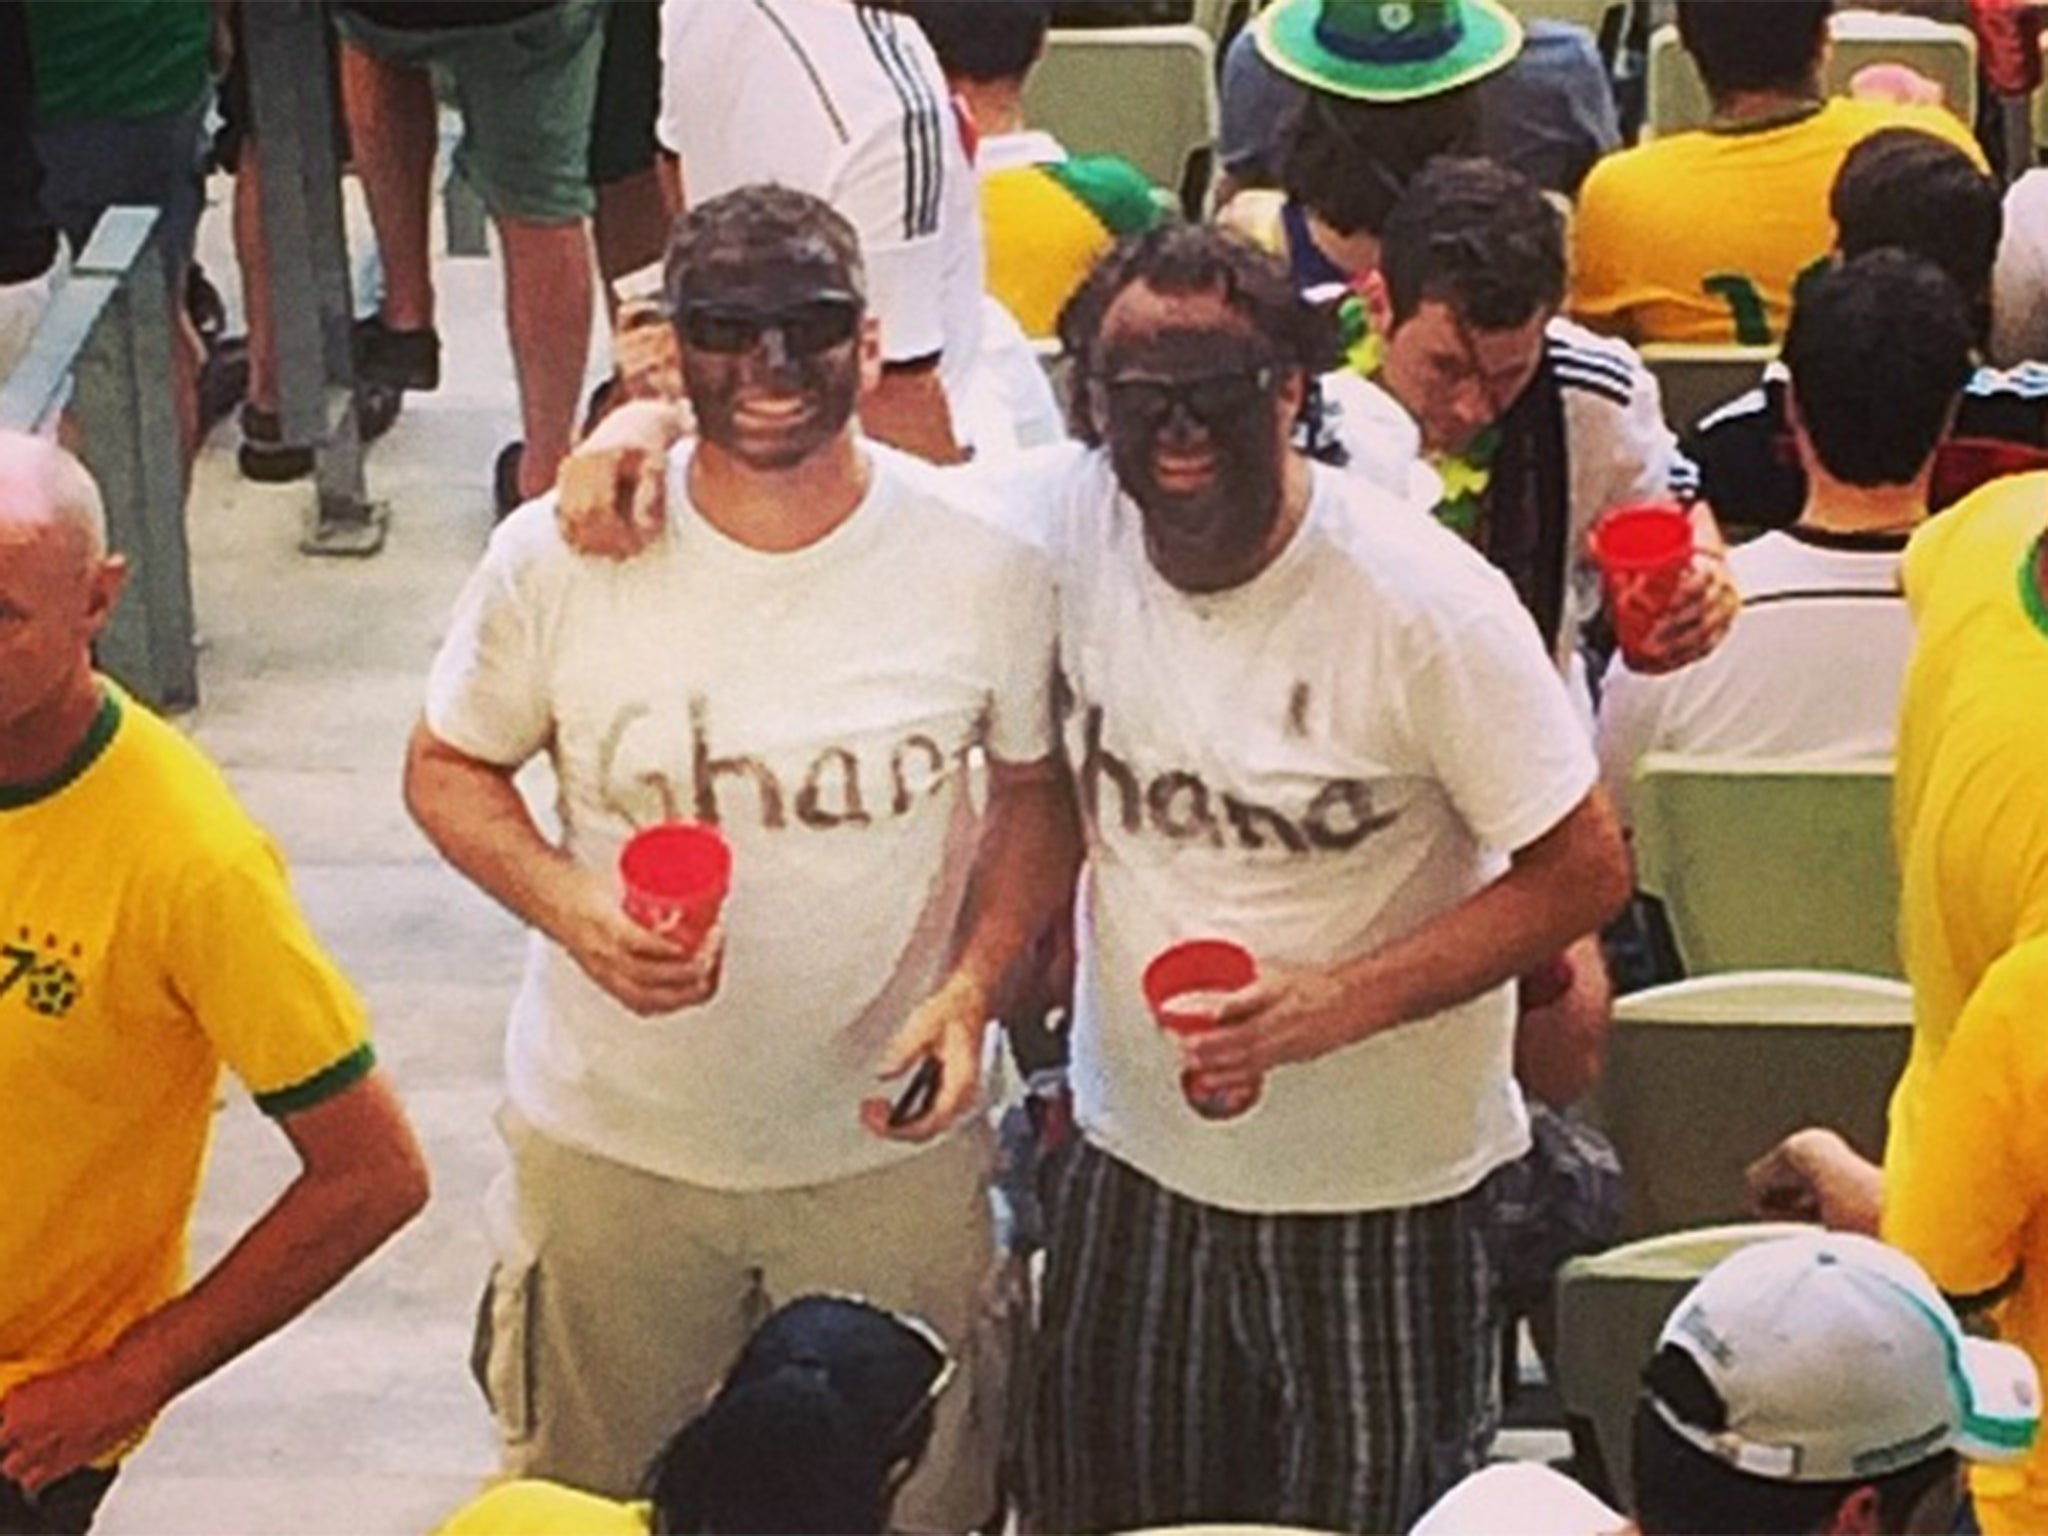 World Cup 2014: Fifa investigate image of fans wearing black face paint during Ghana vs Germany